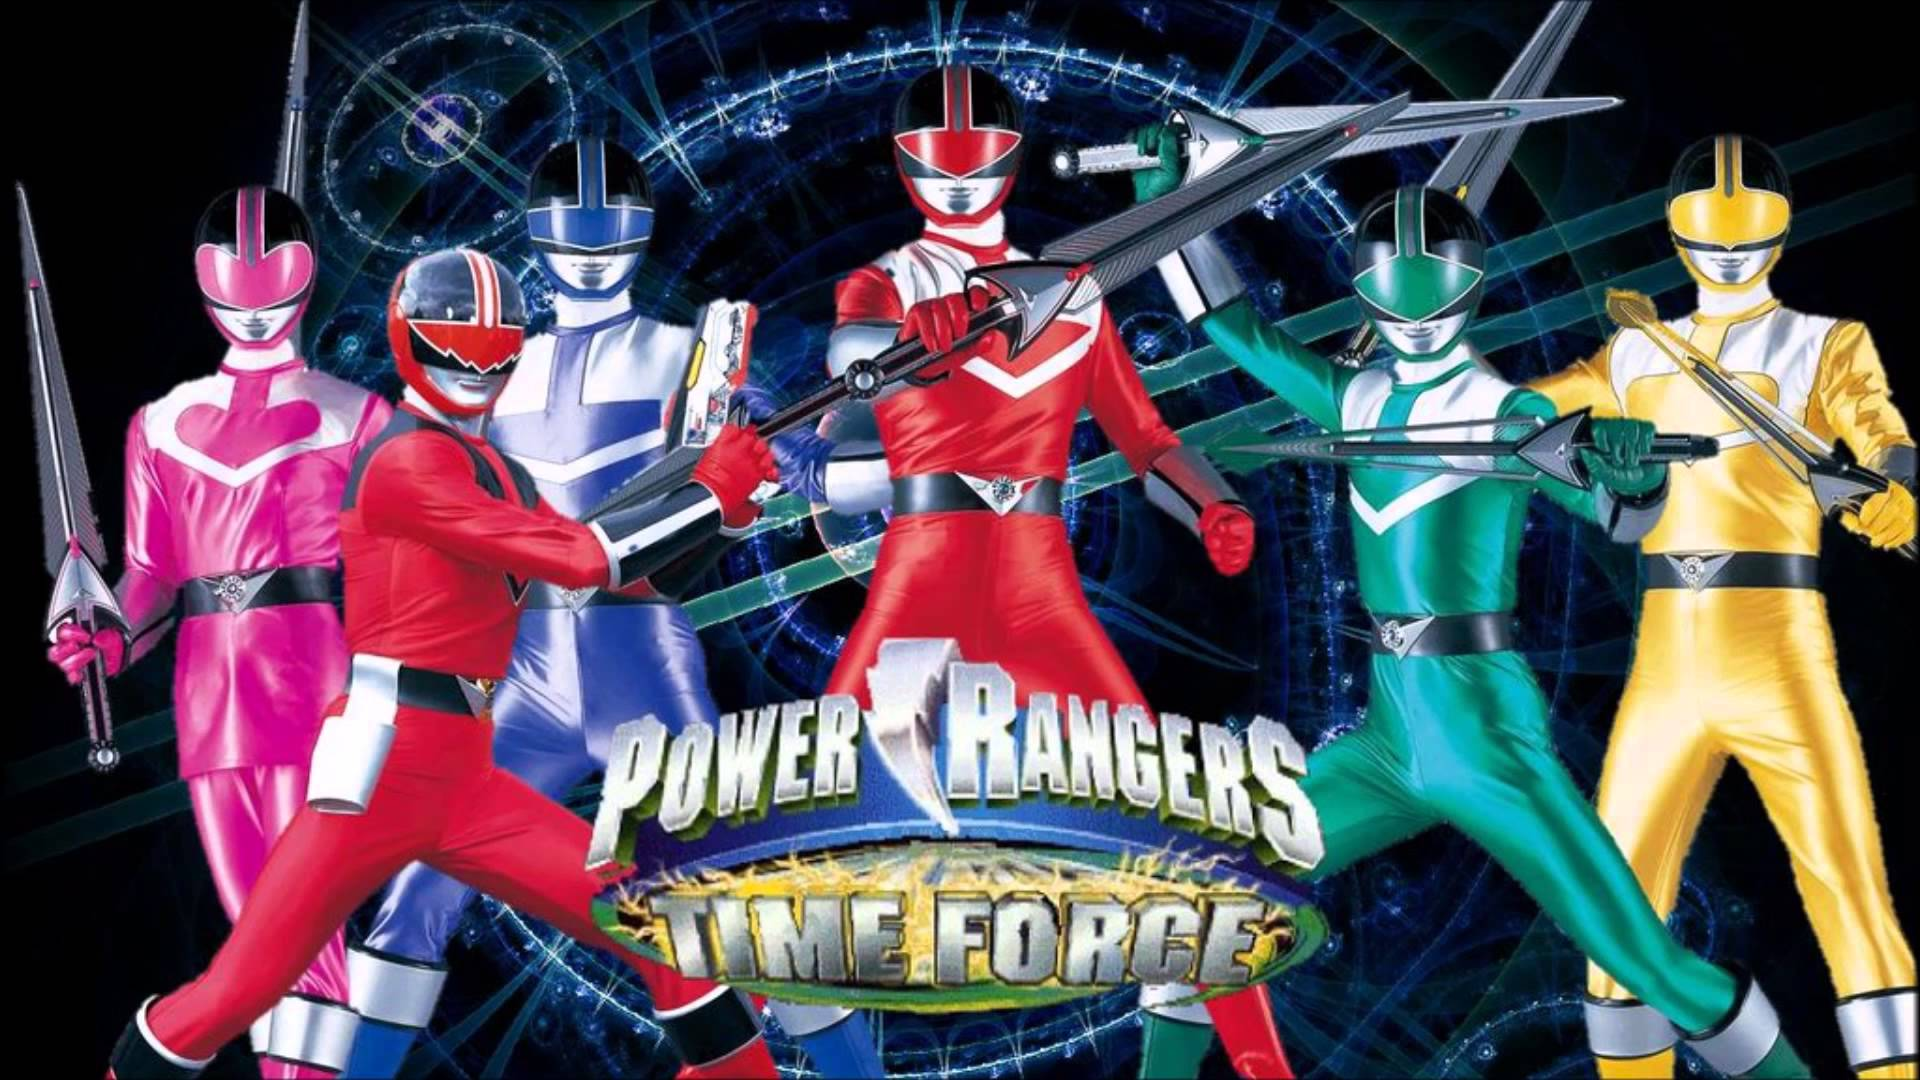 Power Rangers Time Force Wallpapers Video Game Hq Power Rangers